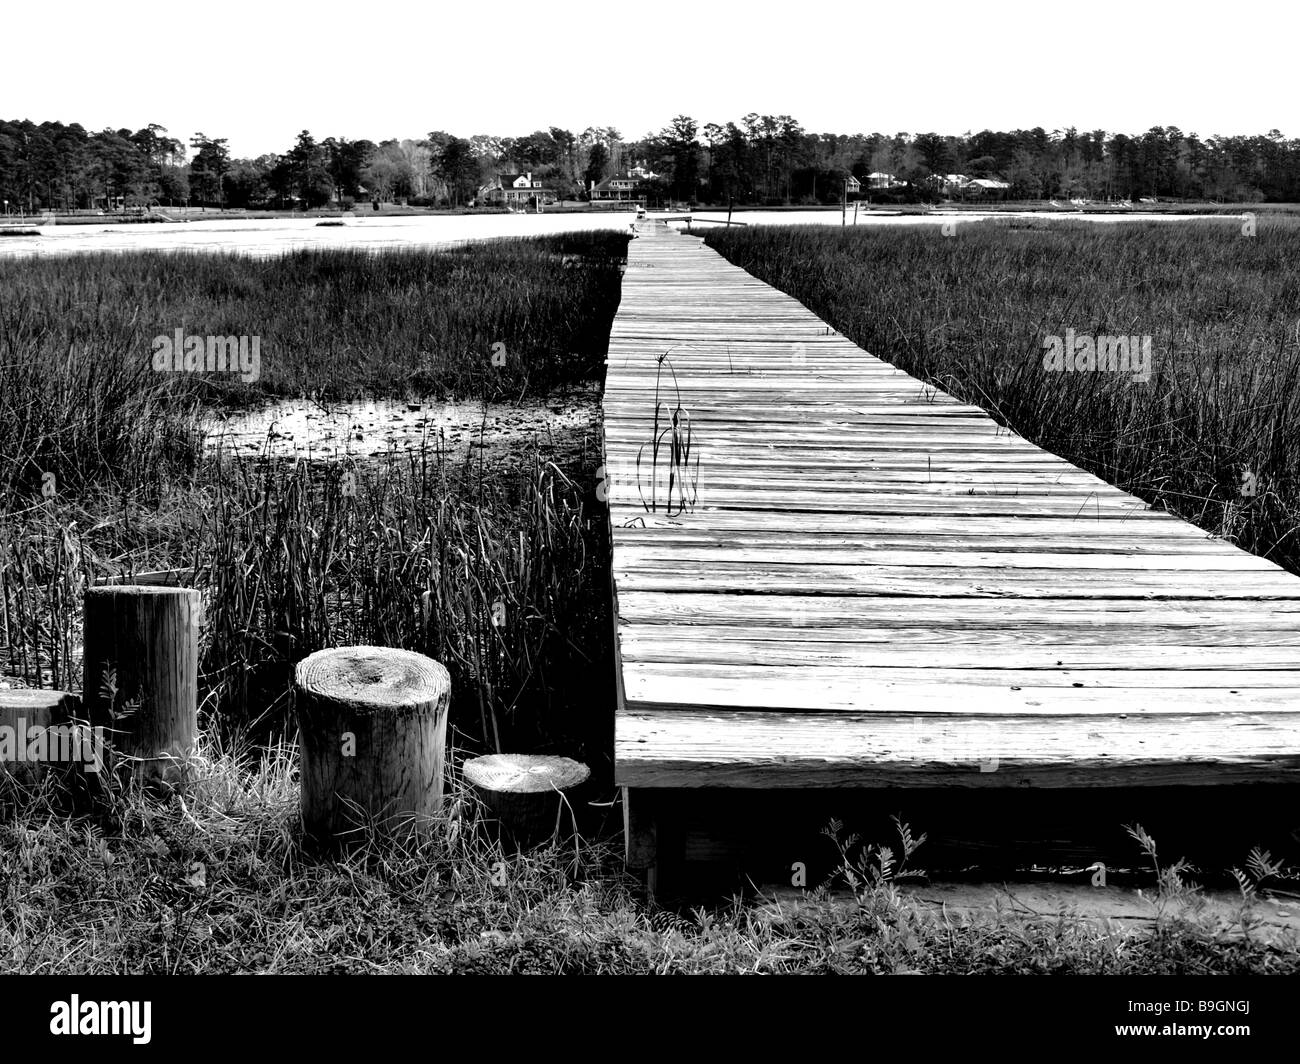 black and white panoramic view of marsh river and boat dock low perspective with details of grass wooden planks - Stock Image